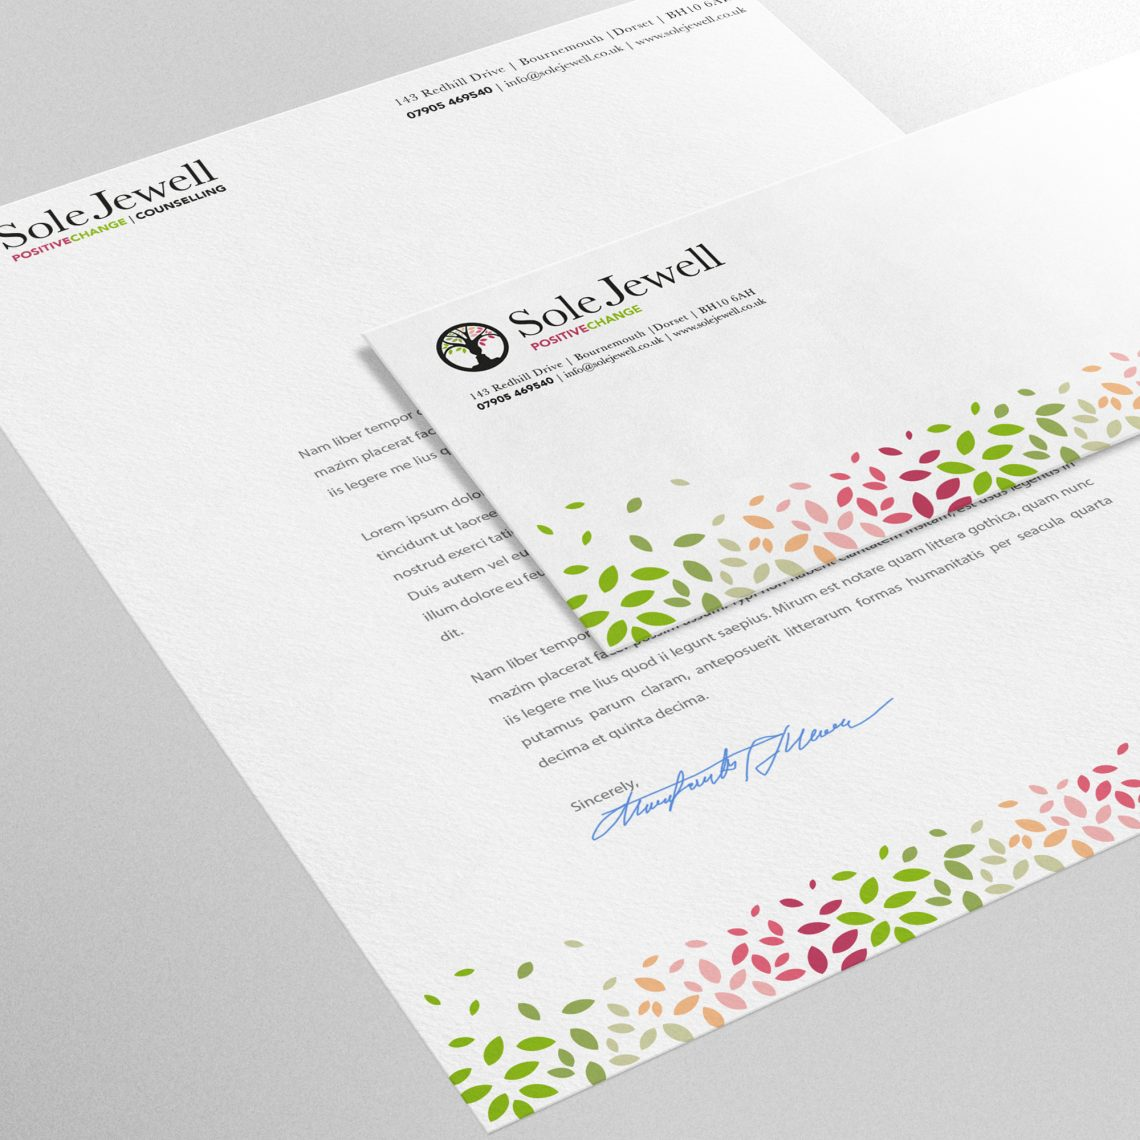 Sole Jewell stationary designs